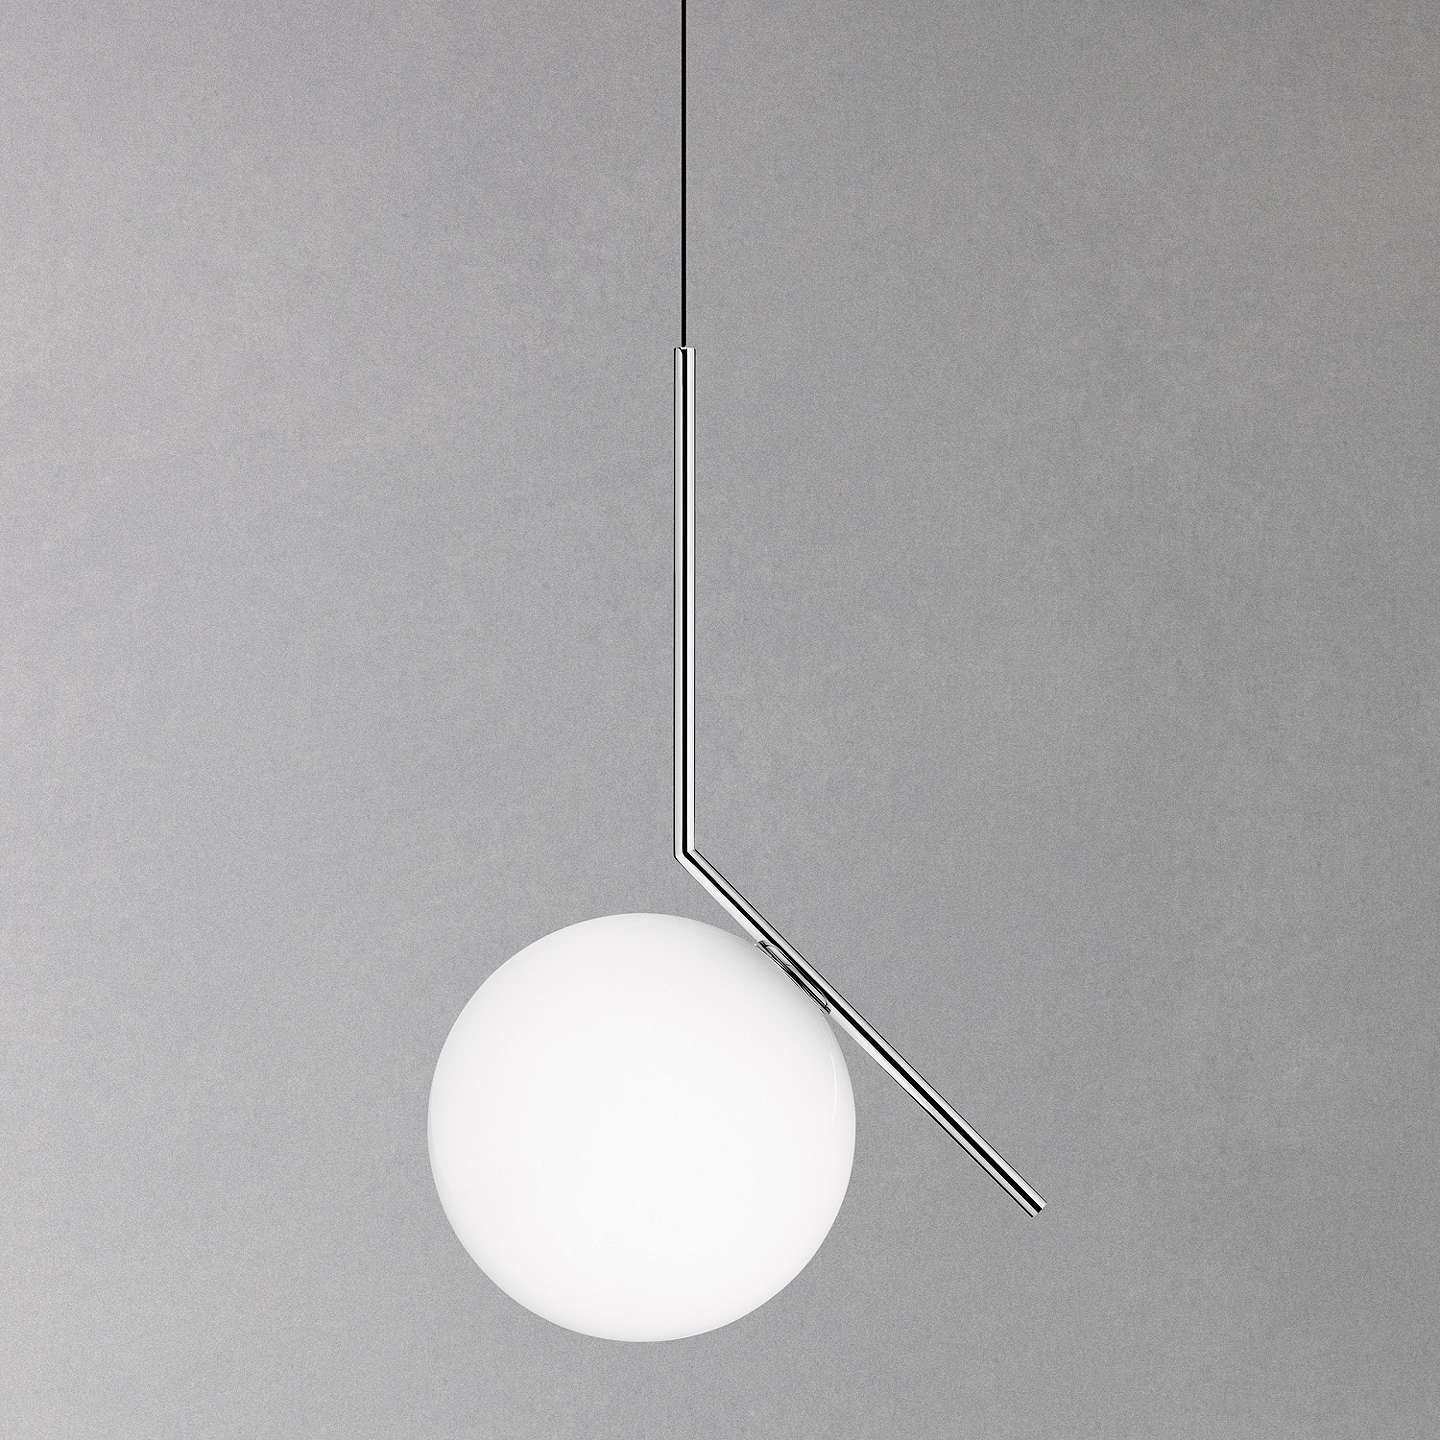 Flos ic s1 ceiling light 20cm polished chrome at john lewis buyflos ic s1 ceiling light 20cm polished chrome online at johnlewis mozeypictures Images